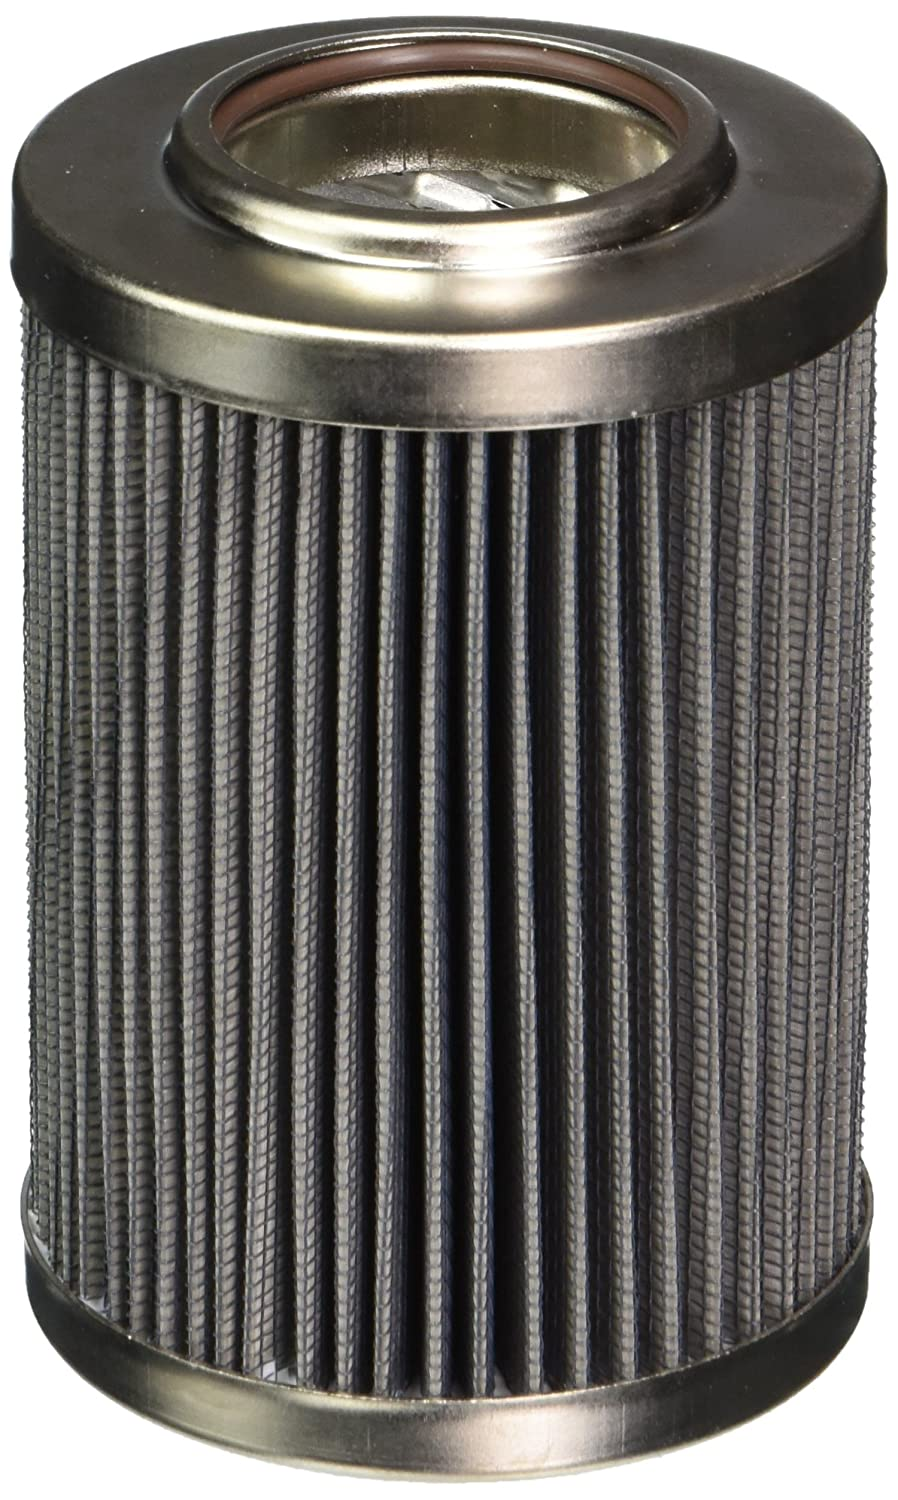 Killer Filter Replacement for MAIN FILTER MF0578146